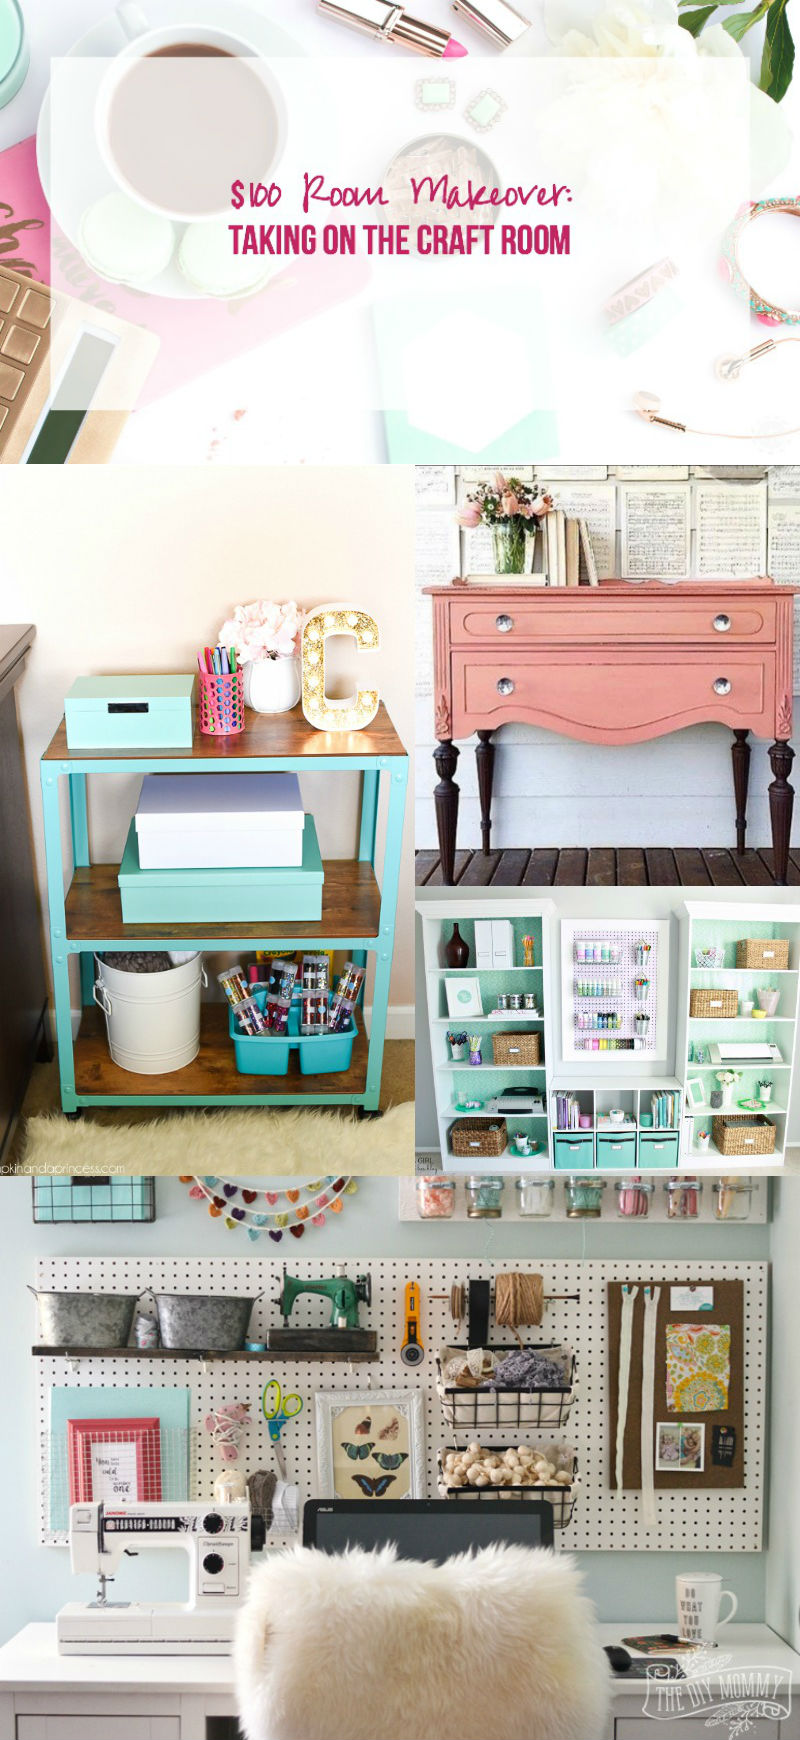 $100 Room Challenge: Taking on the Craft Room